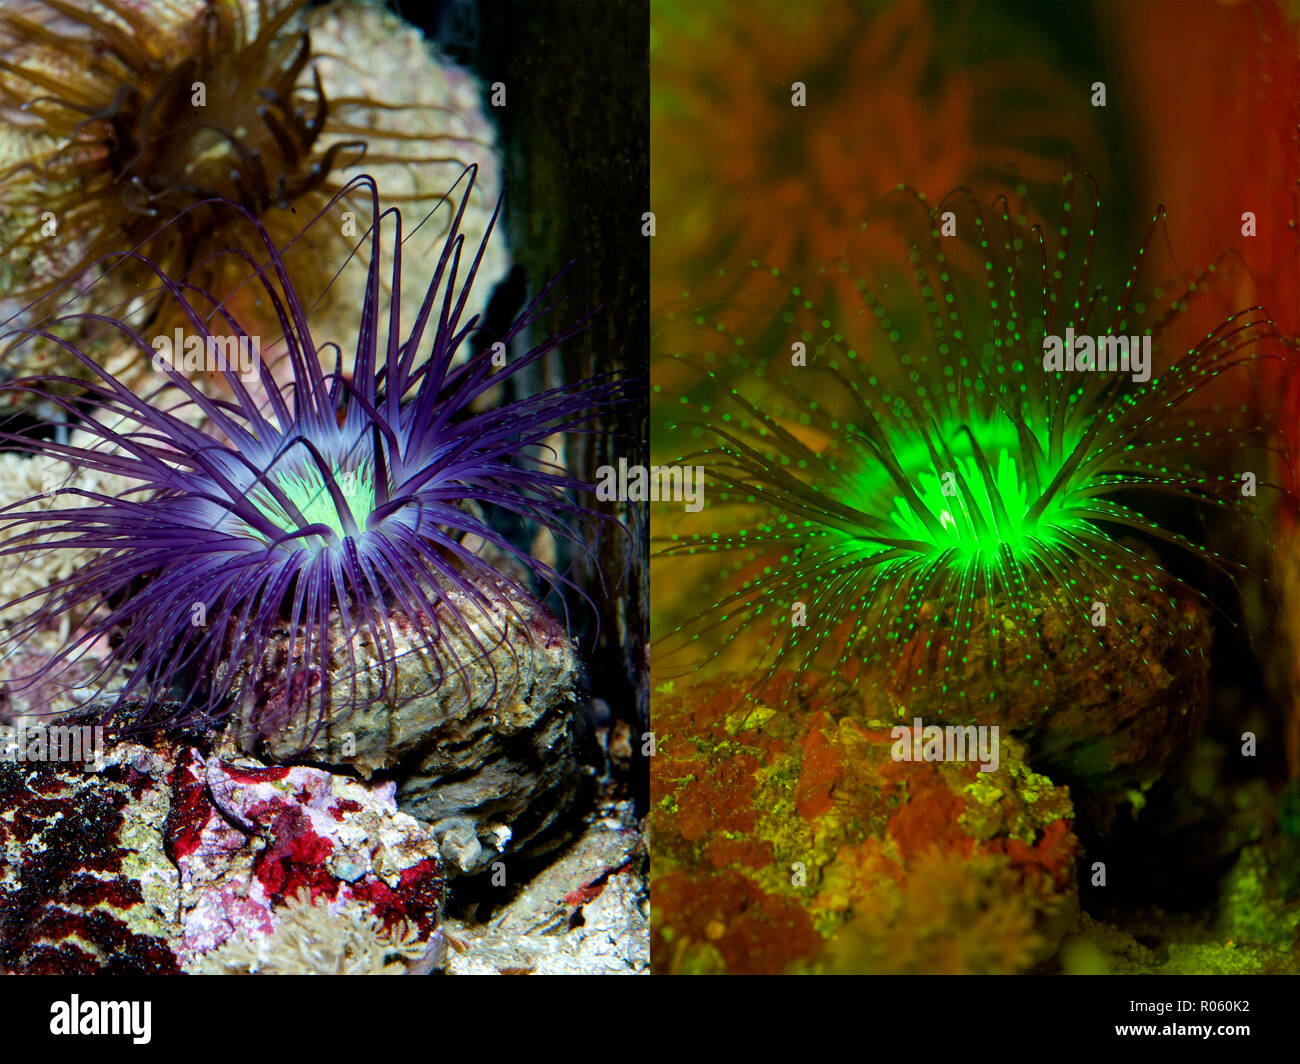 Fluorescent tube-dwelling anemone, Cerianthus sp.. Left photographed with daylight and right showing fluorescent colours photographed under special - Stock Image